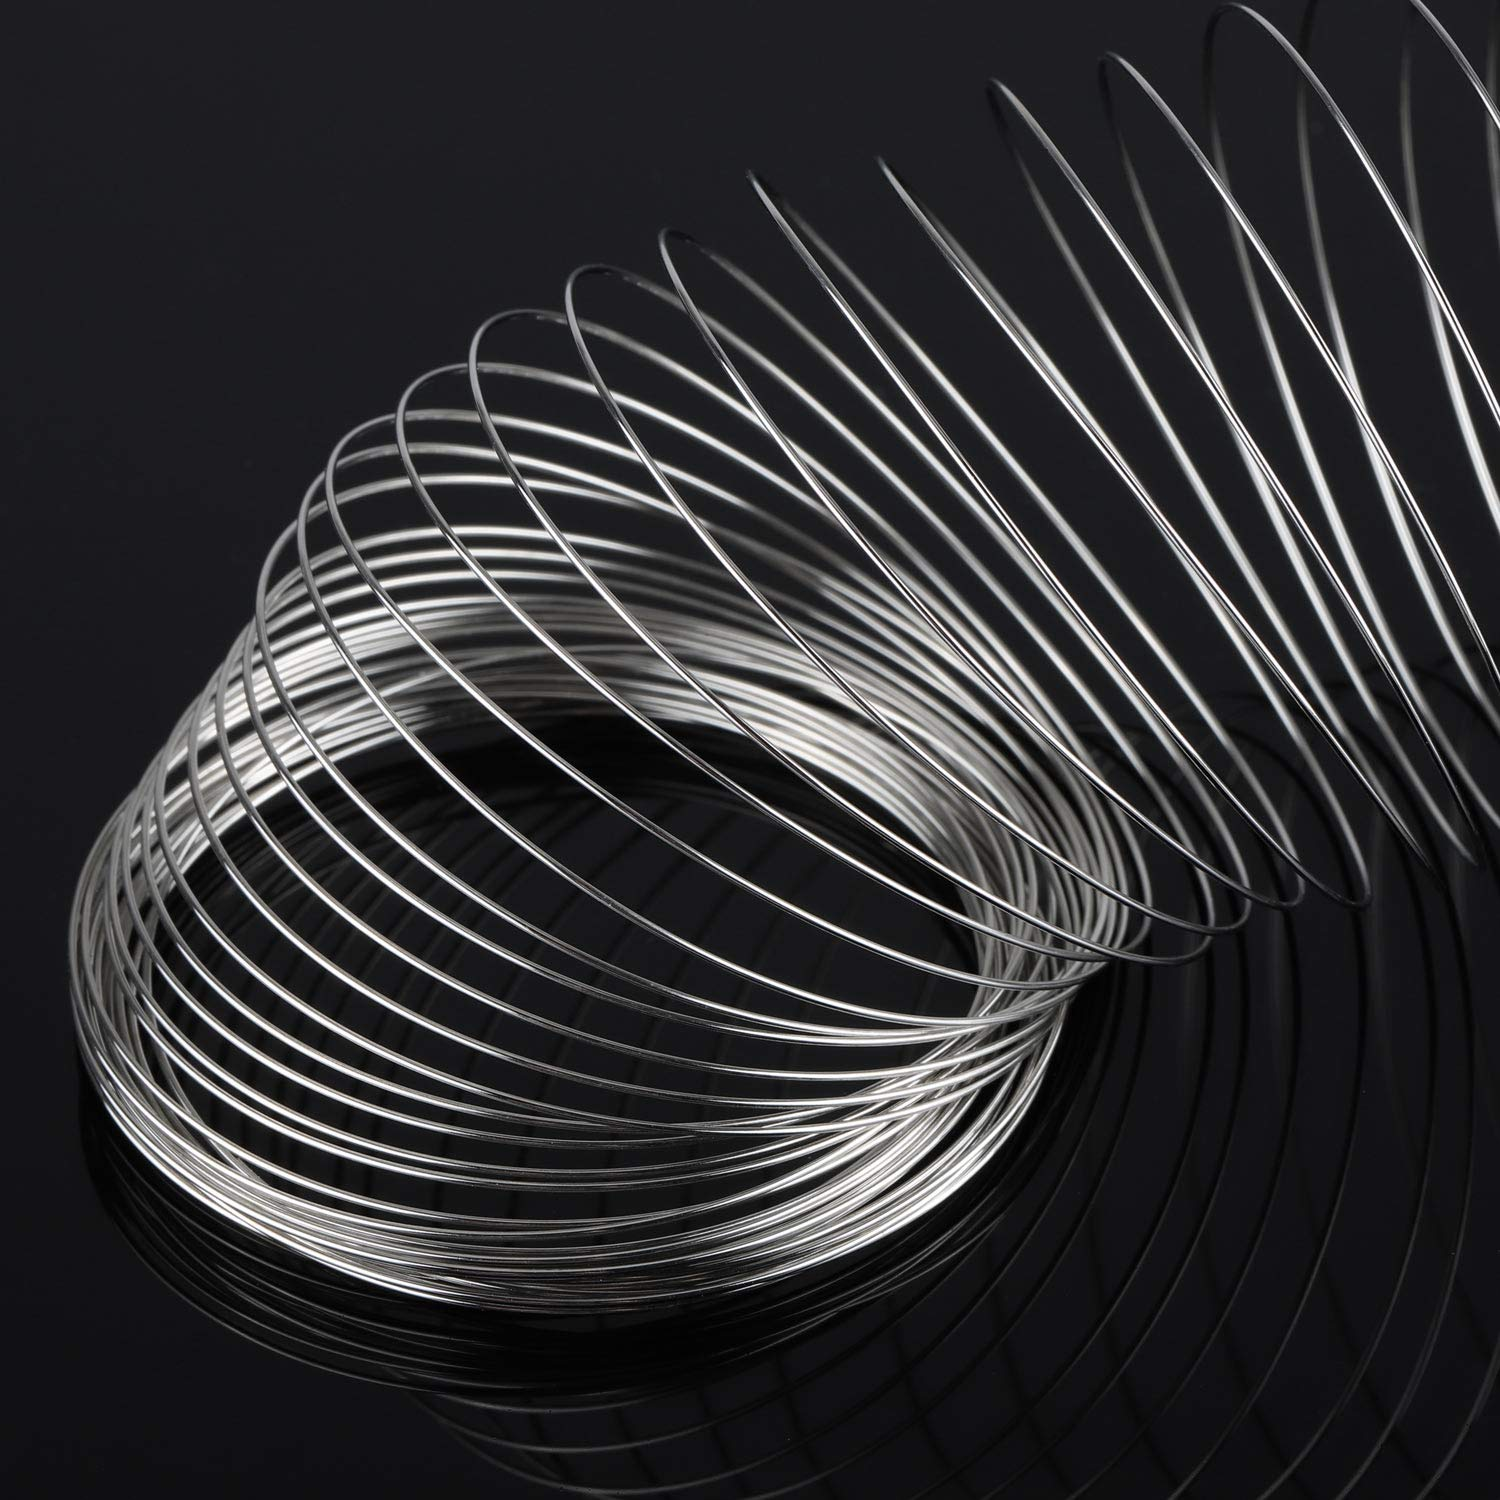 800 Loops Steel Jewelry Wire Silver Memory Wire Beading Wire for Jewelry Making Wrapping Stones Necklaces and DIY Cable Wire Bracelet